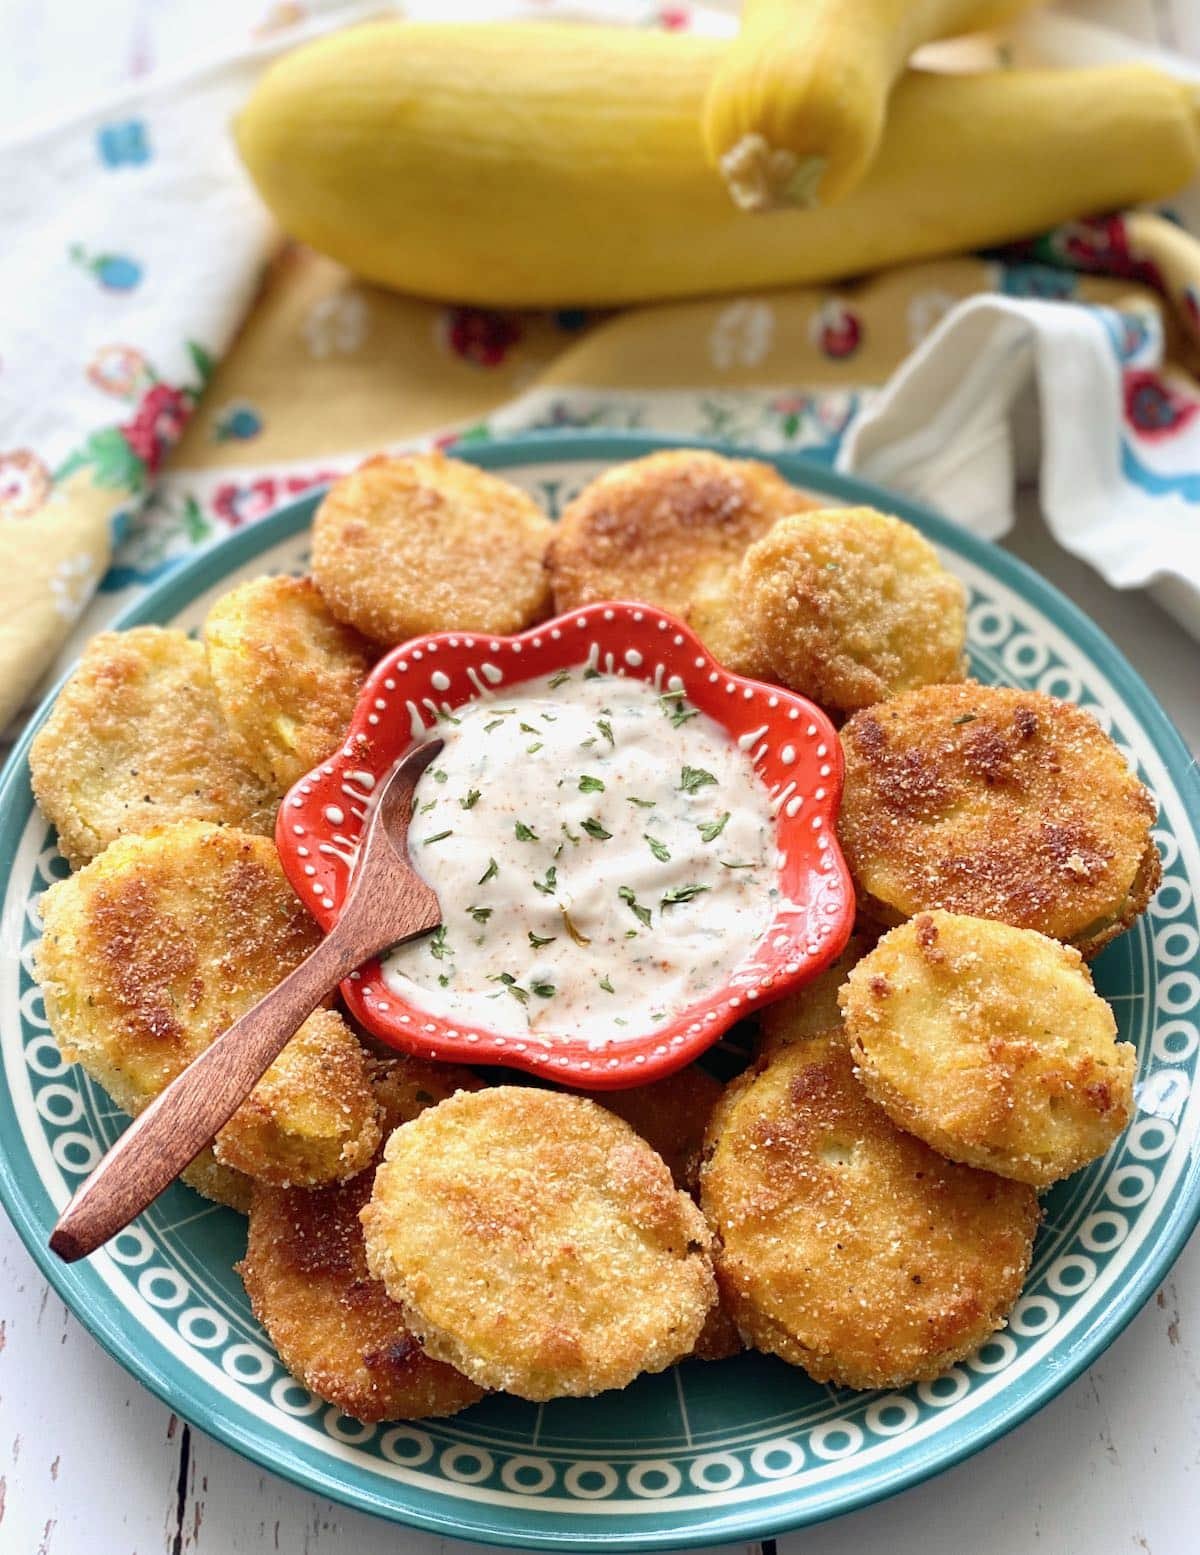 rounds of squash patties with ranch dip in the middle.